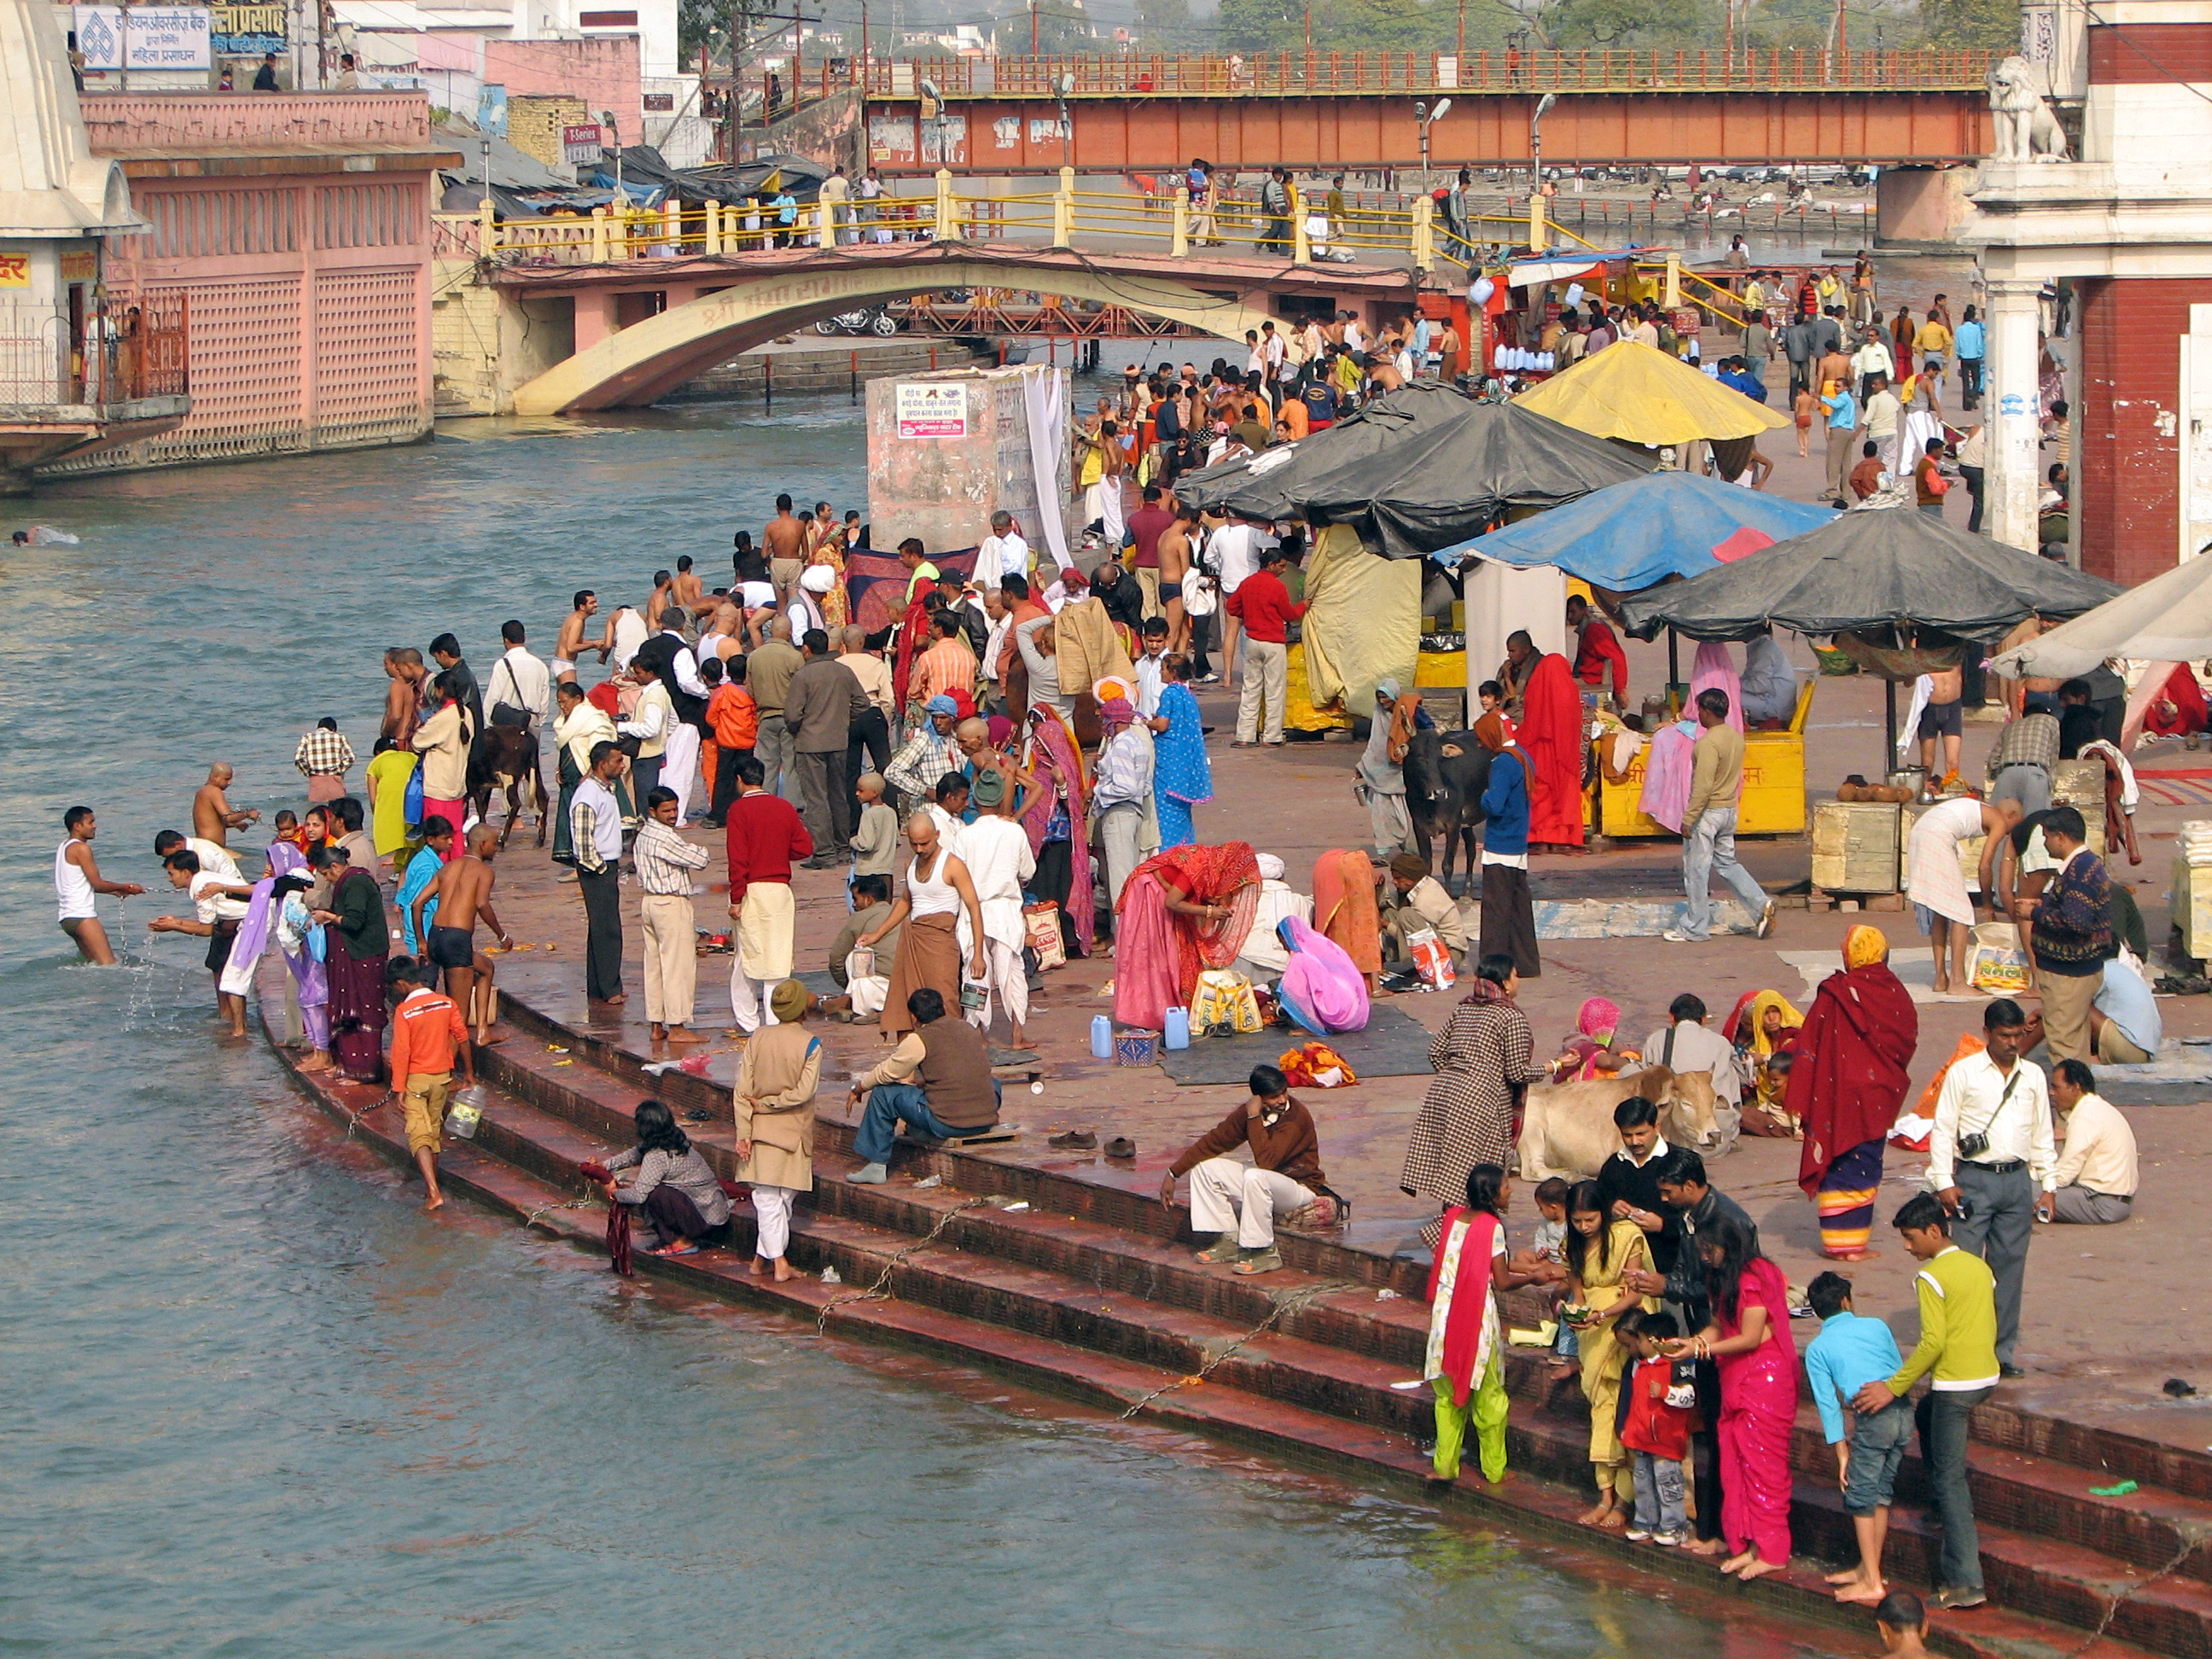 Haridwar India  City pictures : Description India Haridwar 005 Colourful pilgrims gathering for ...